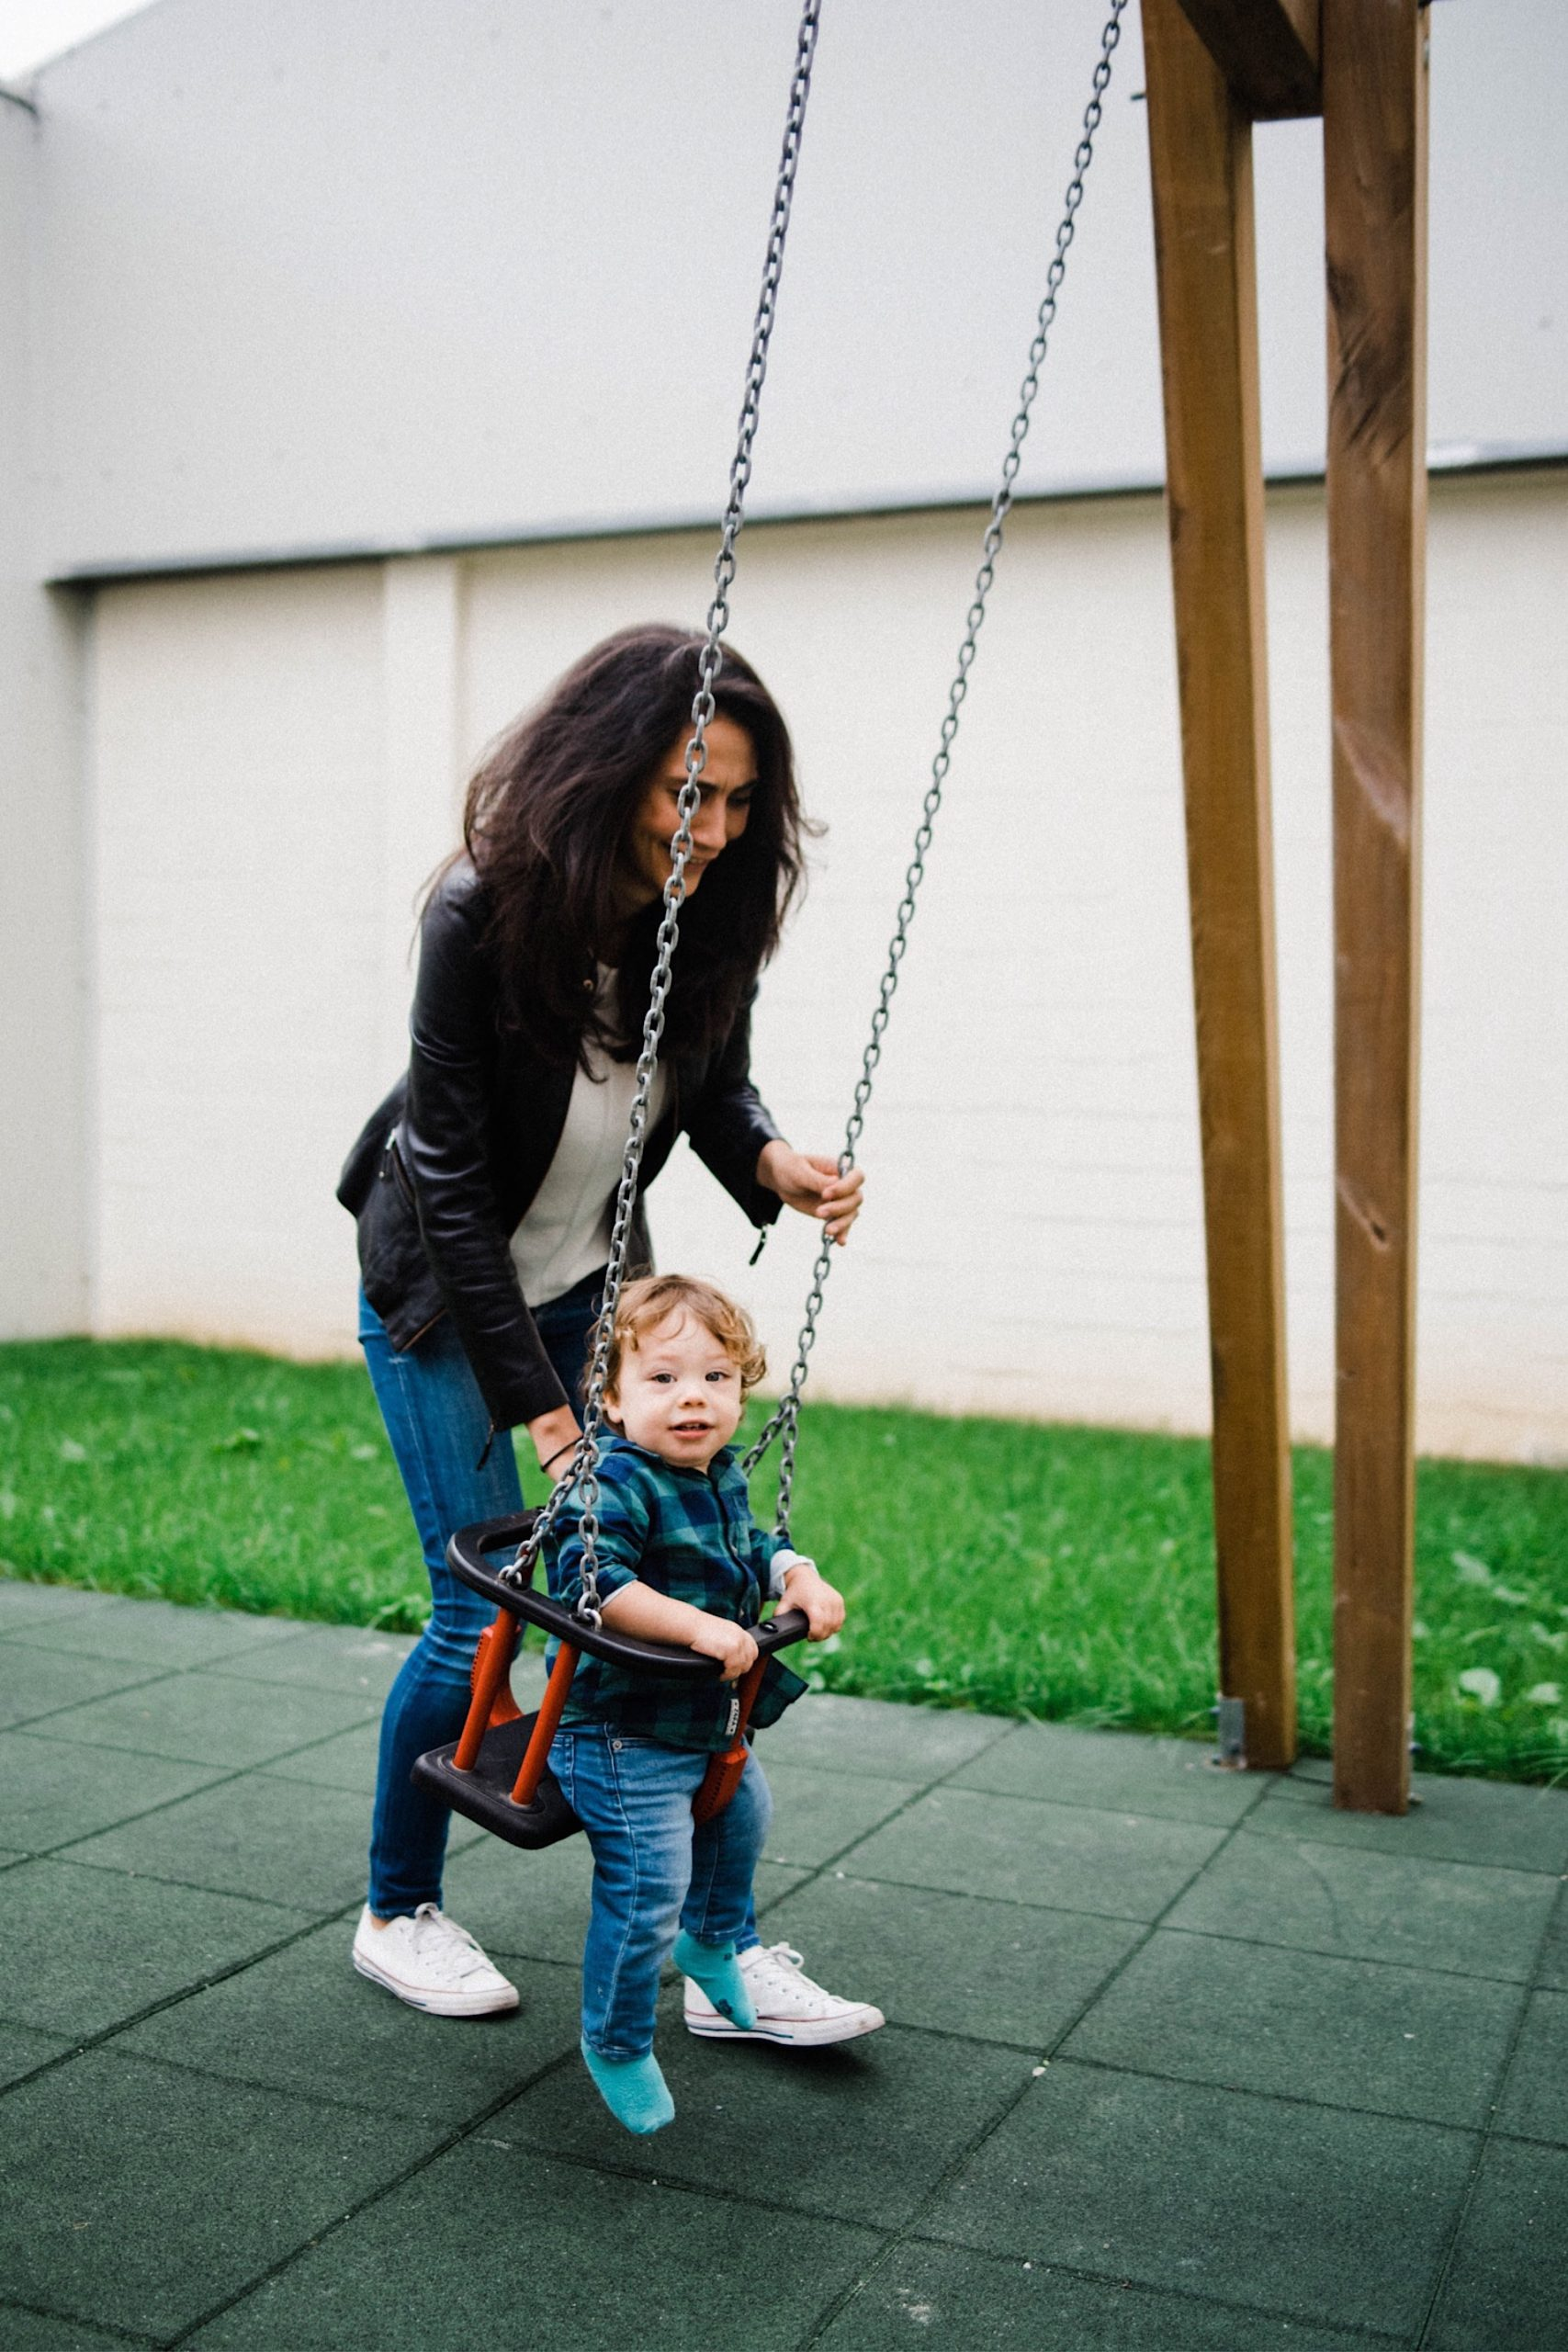 Portrait photo of a Mum pushing her toddler on a swing, at their local playground.